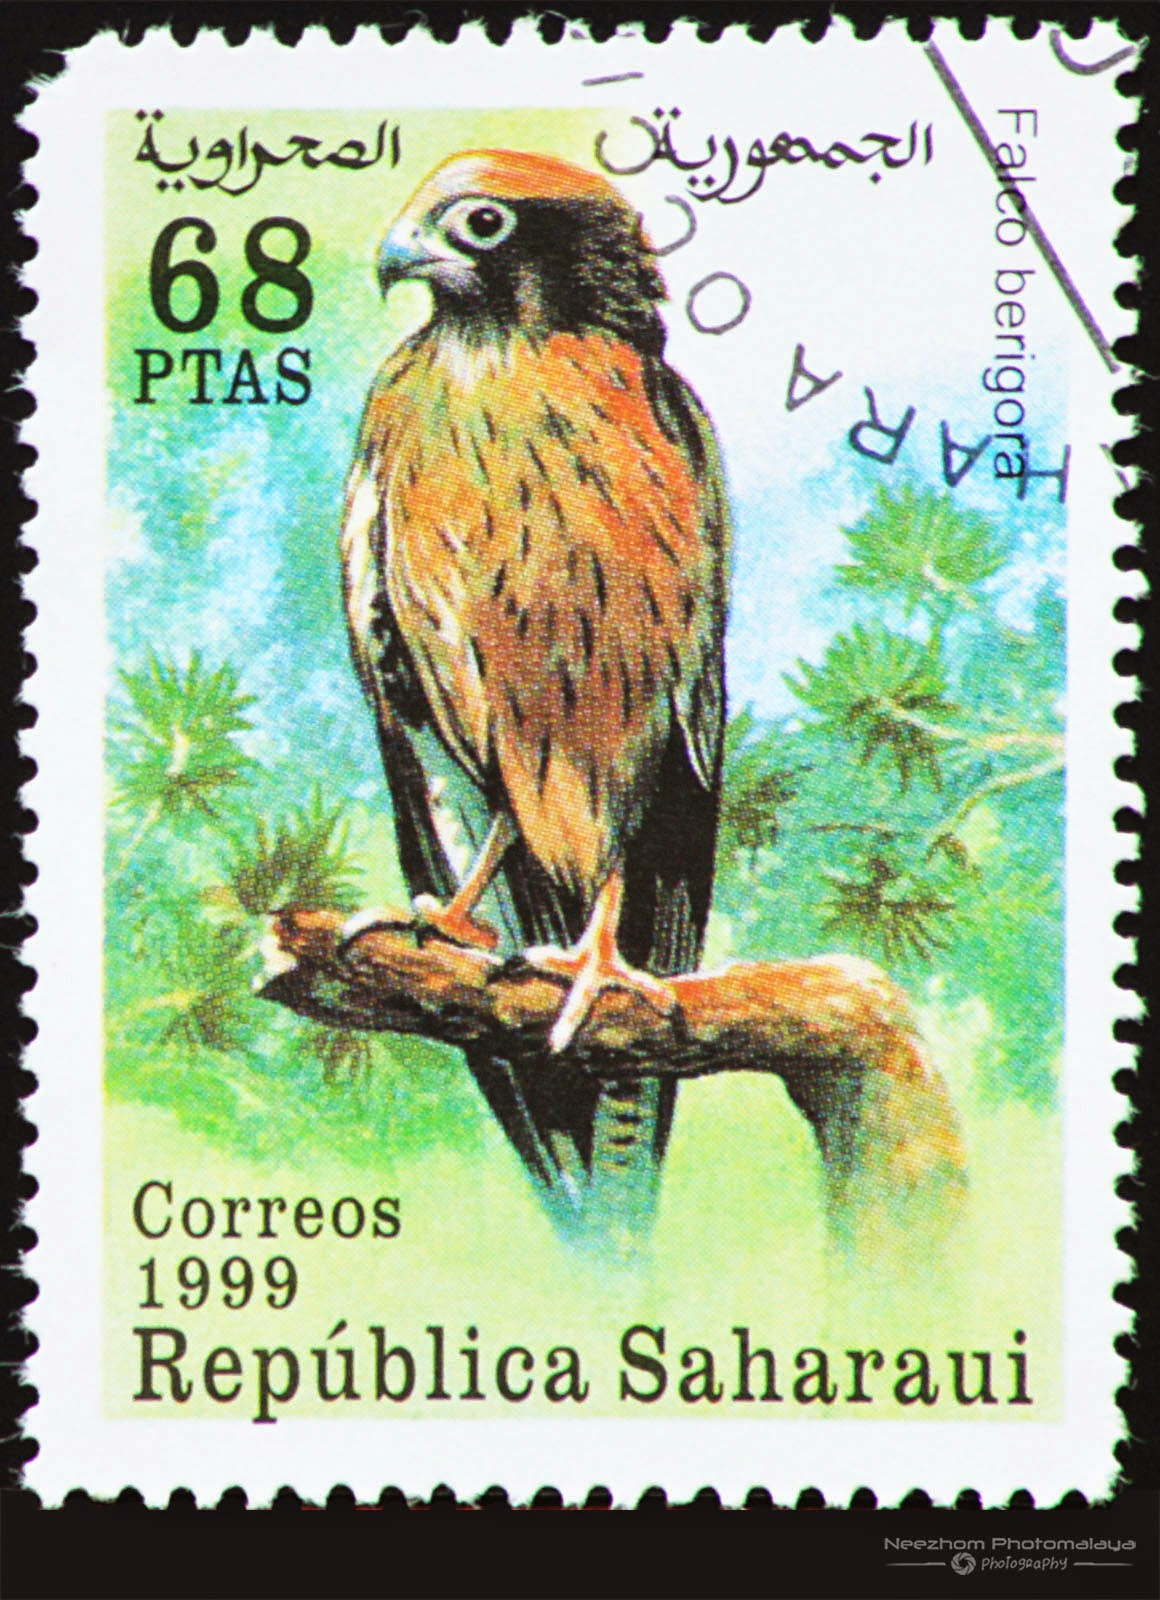 Western Sahara 1999 Birds of Prey stamp - Brown Falcon (Falco berigora) 68 ptas